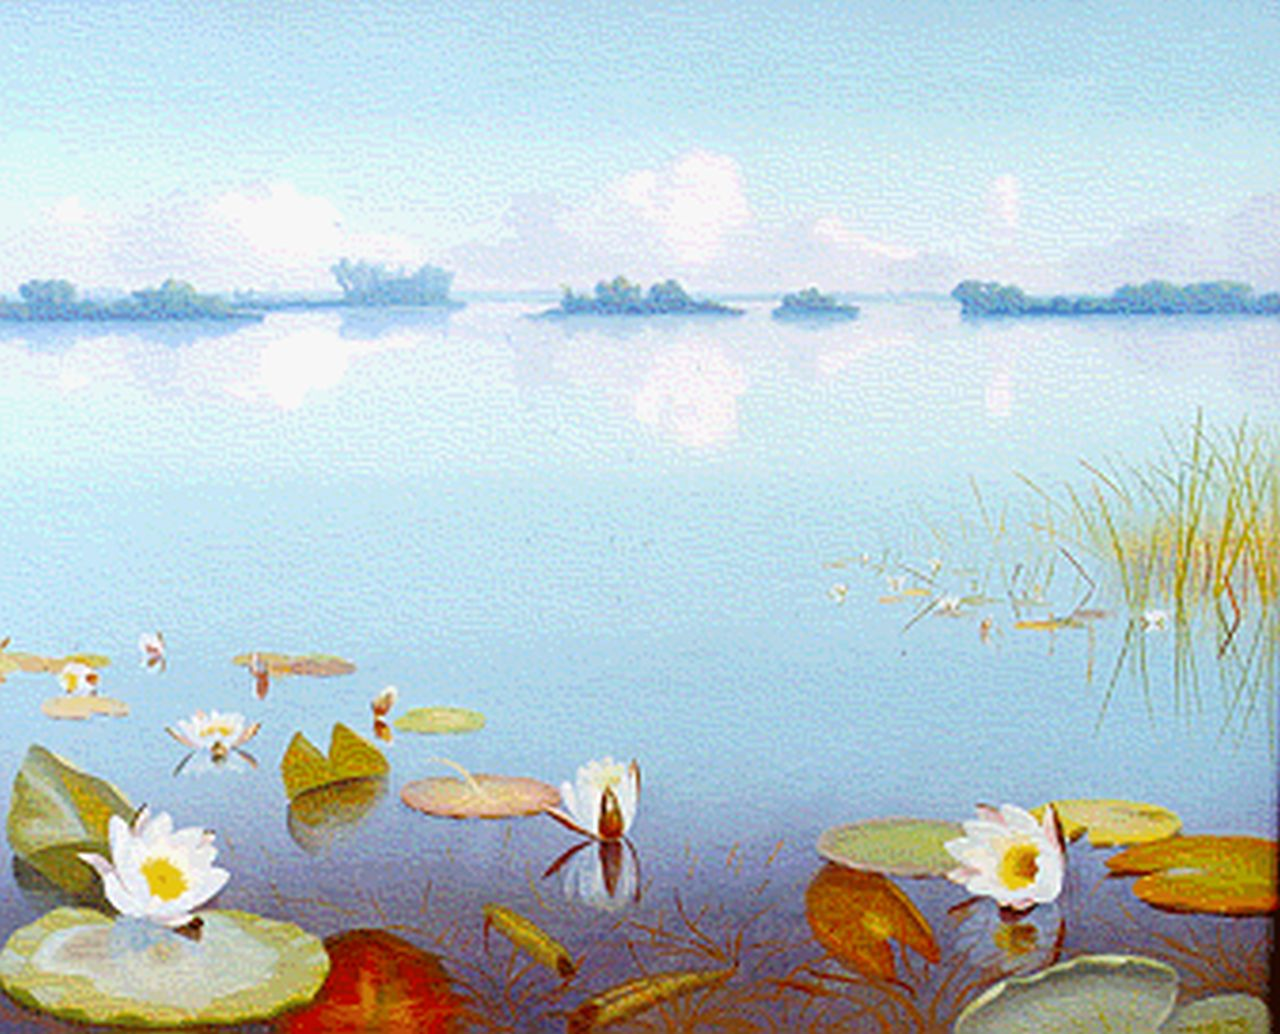 Smorenberg D.  | Dirk Smorenberg, The Loosdrechtse Plassen with water lilies, oil on canvas 50.0 x 60.0 cm, signed l.r.